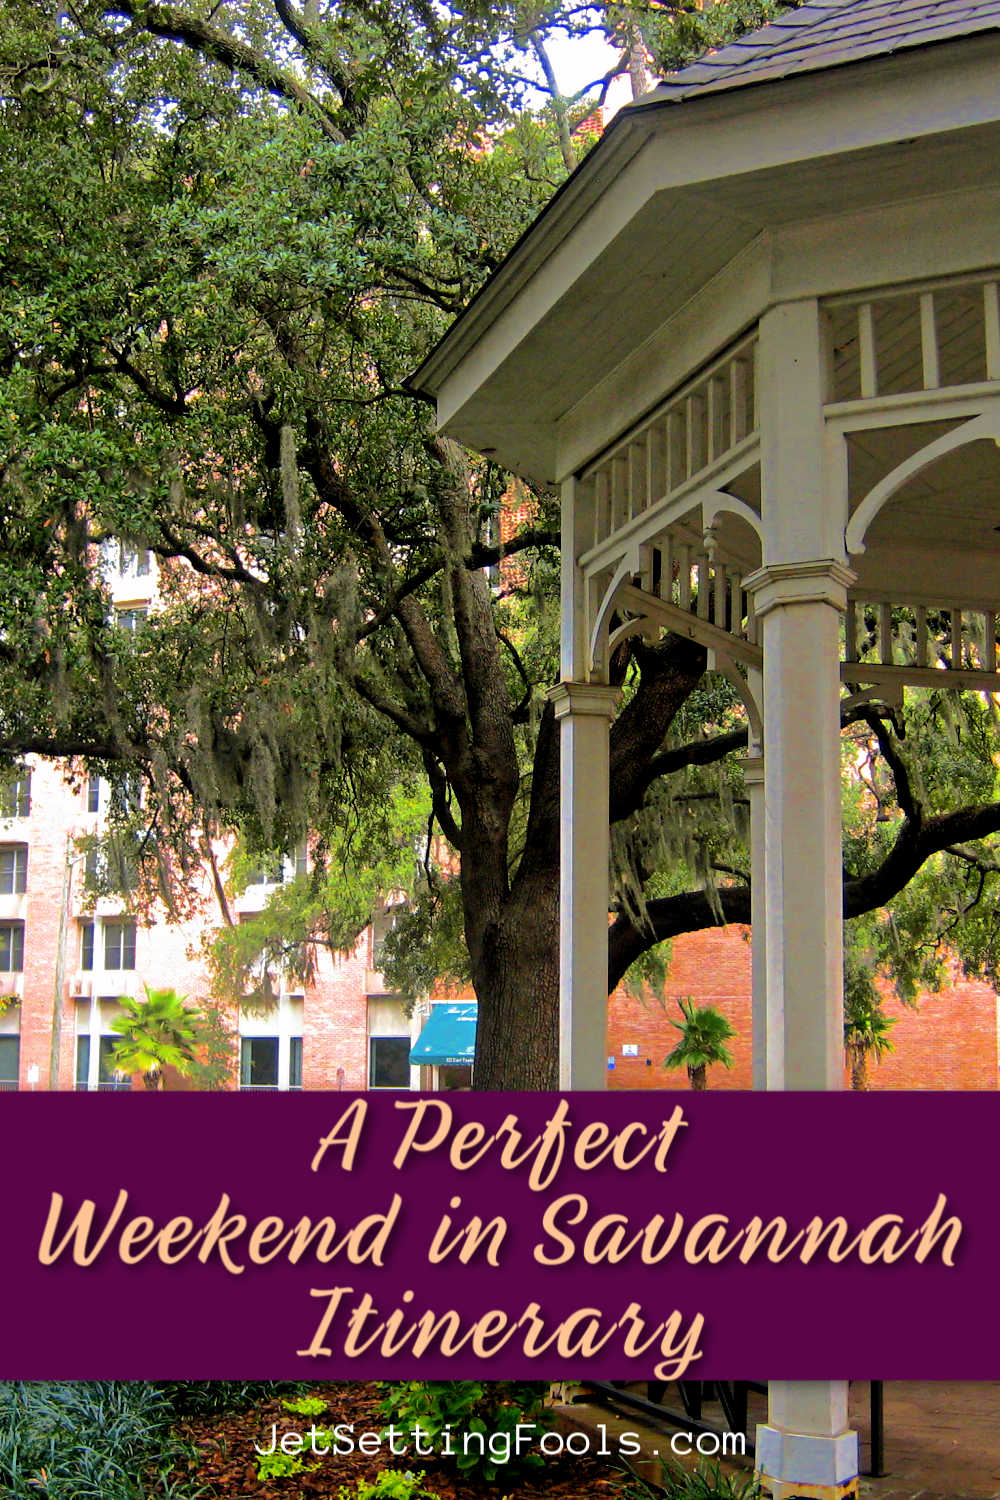 A Perfect Weekend in Savannah Itinerary by JetSettingFools.com